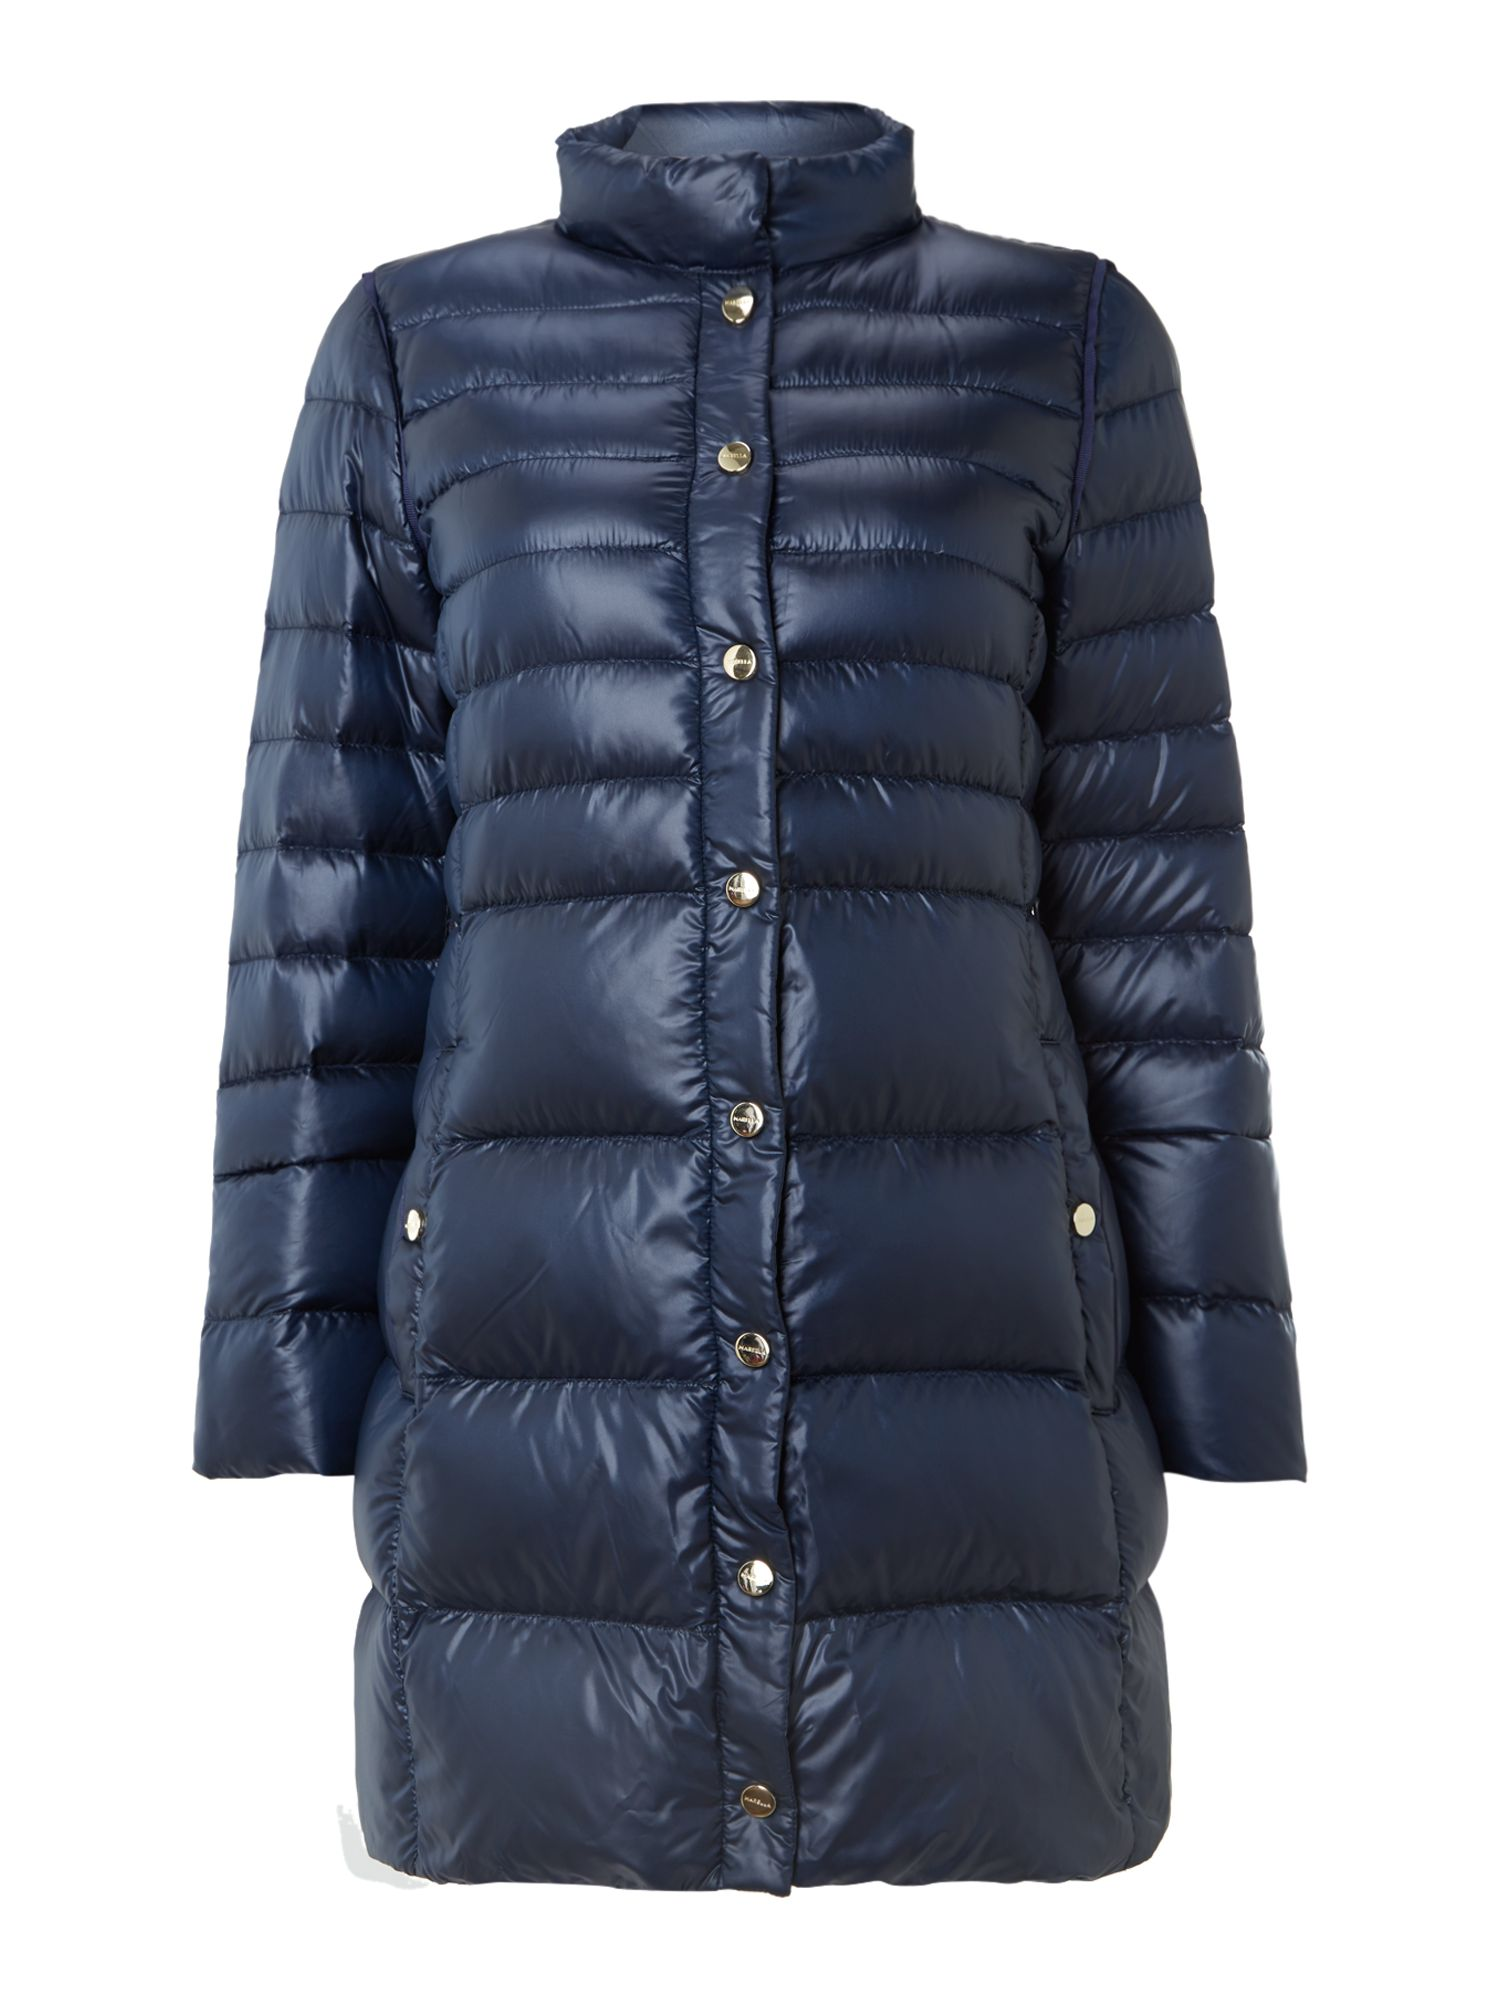 Odino padded jacket